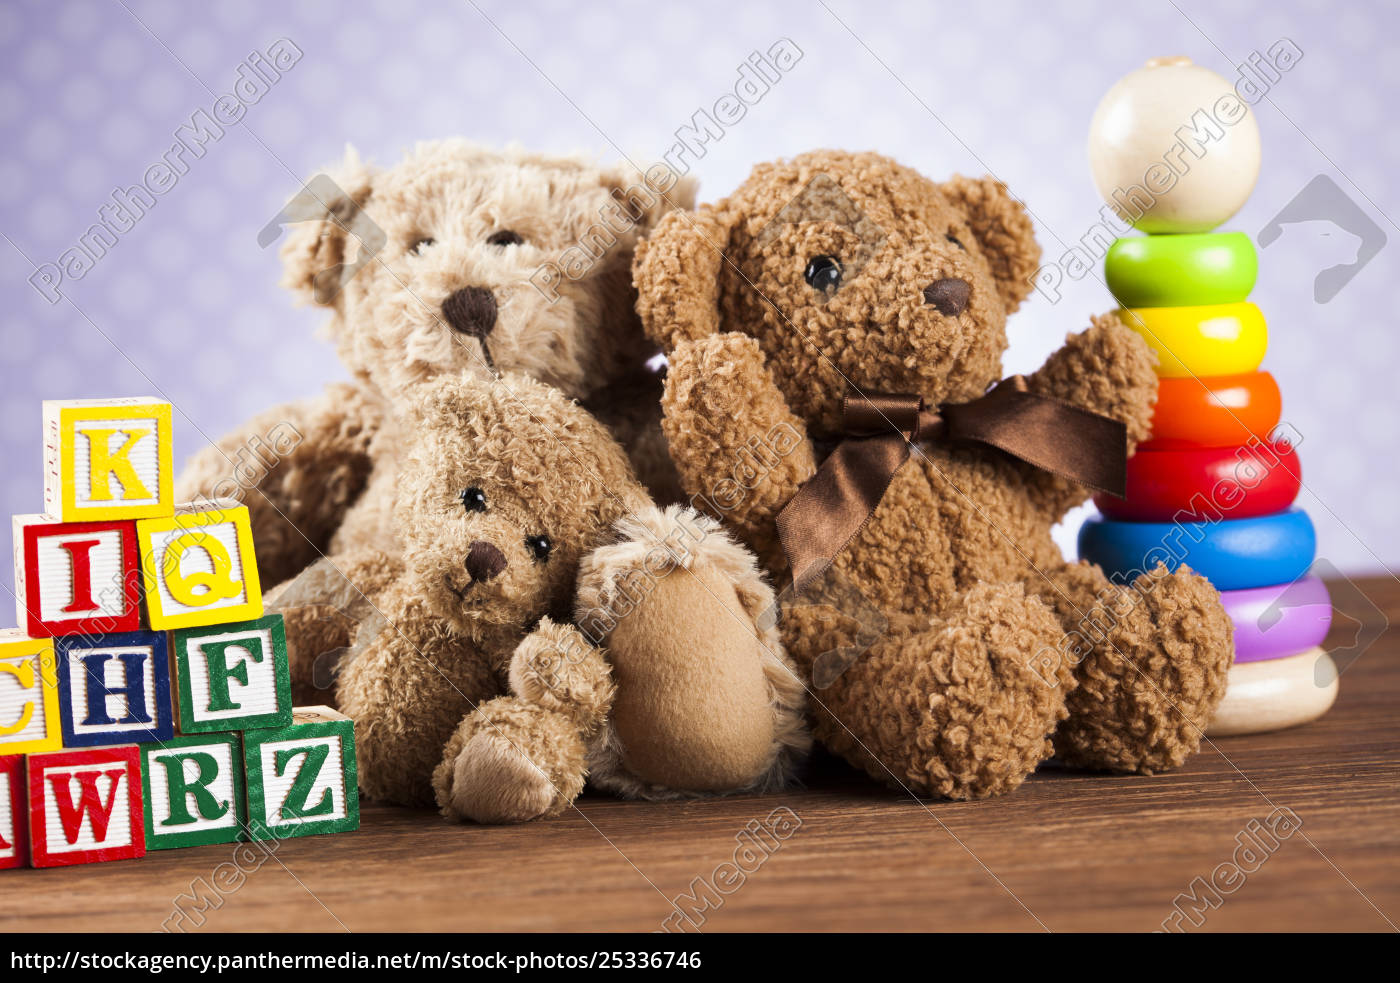 stuffed, baby, toys, on, wooden, background - 25336746